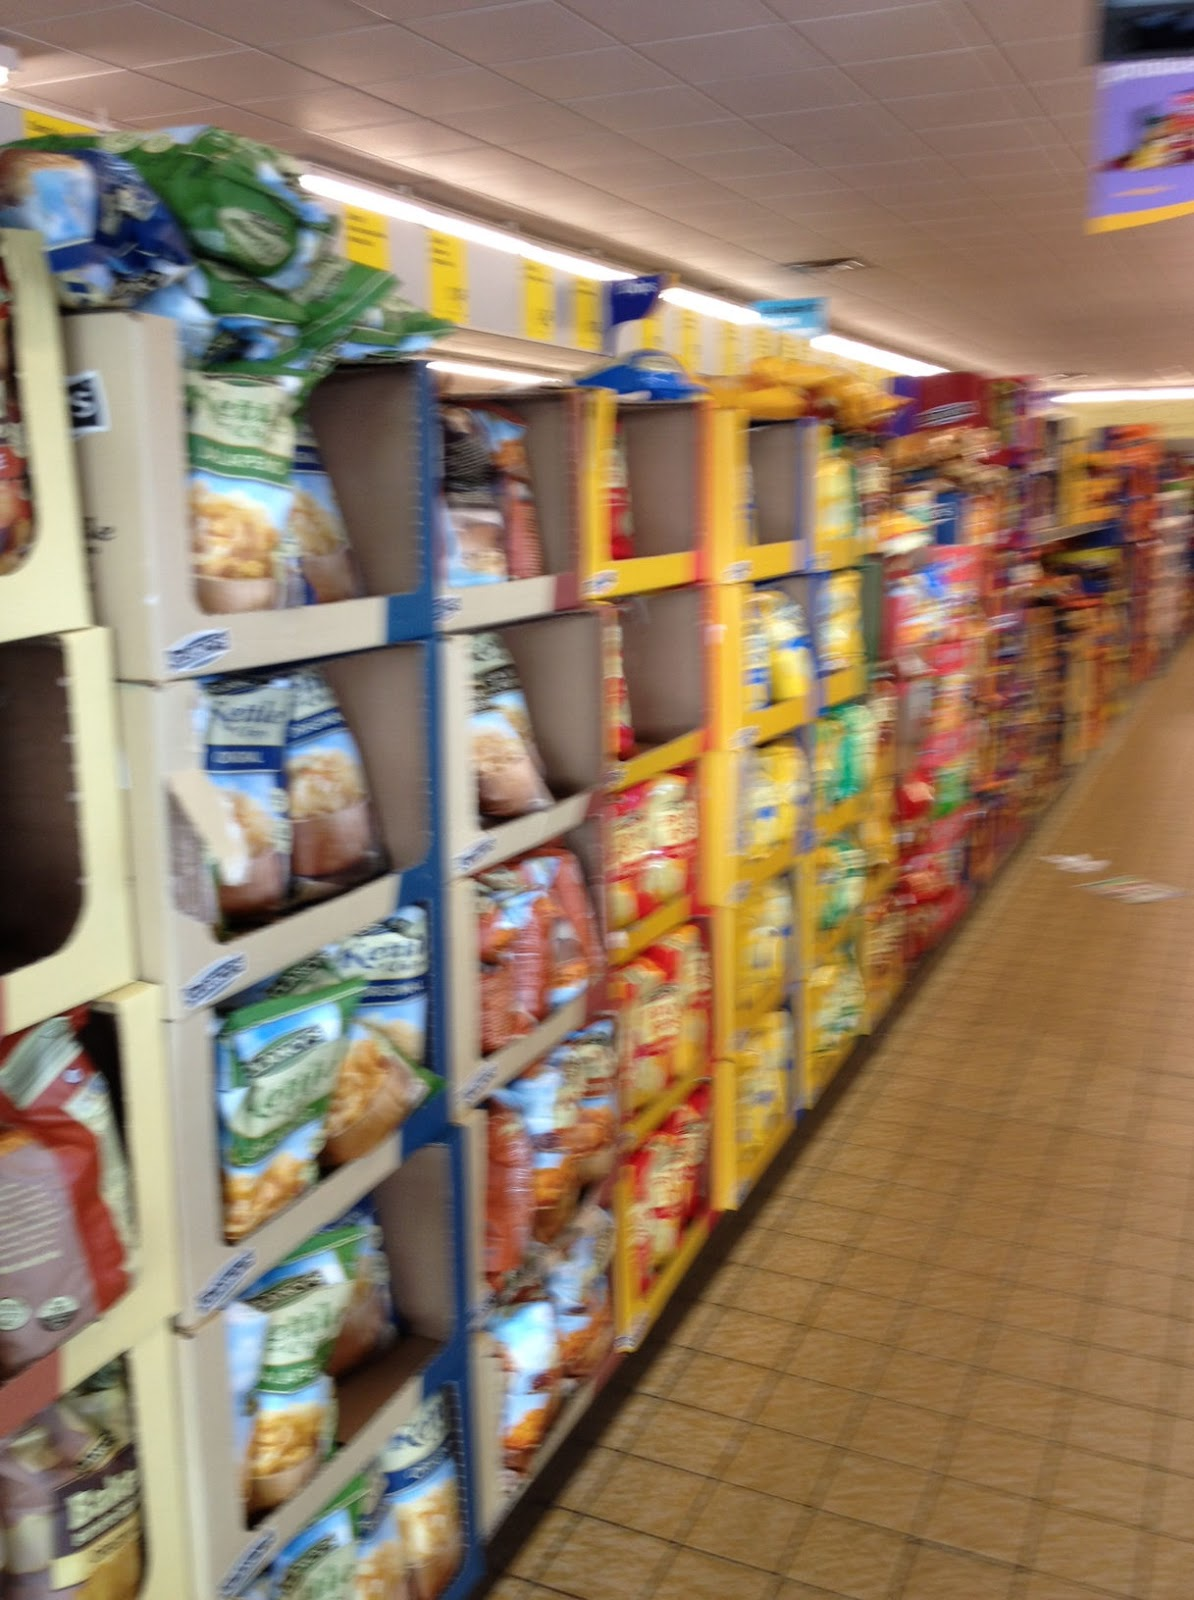 Shopyack: Aldi Grocery Store Review: Low Prices and Quality Too?